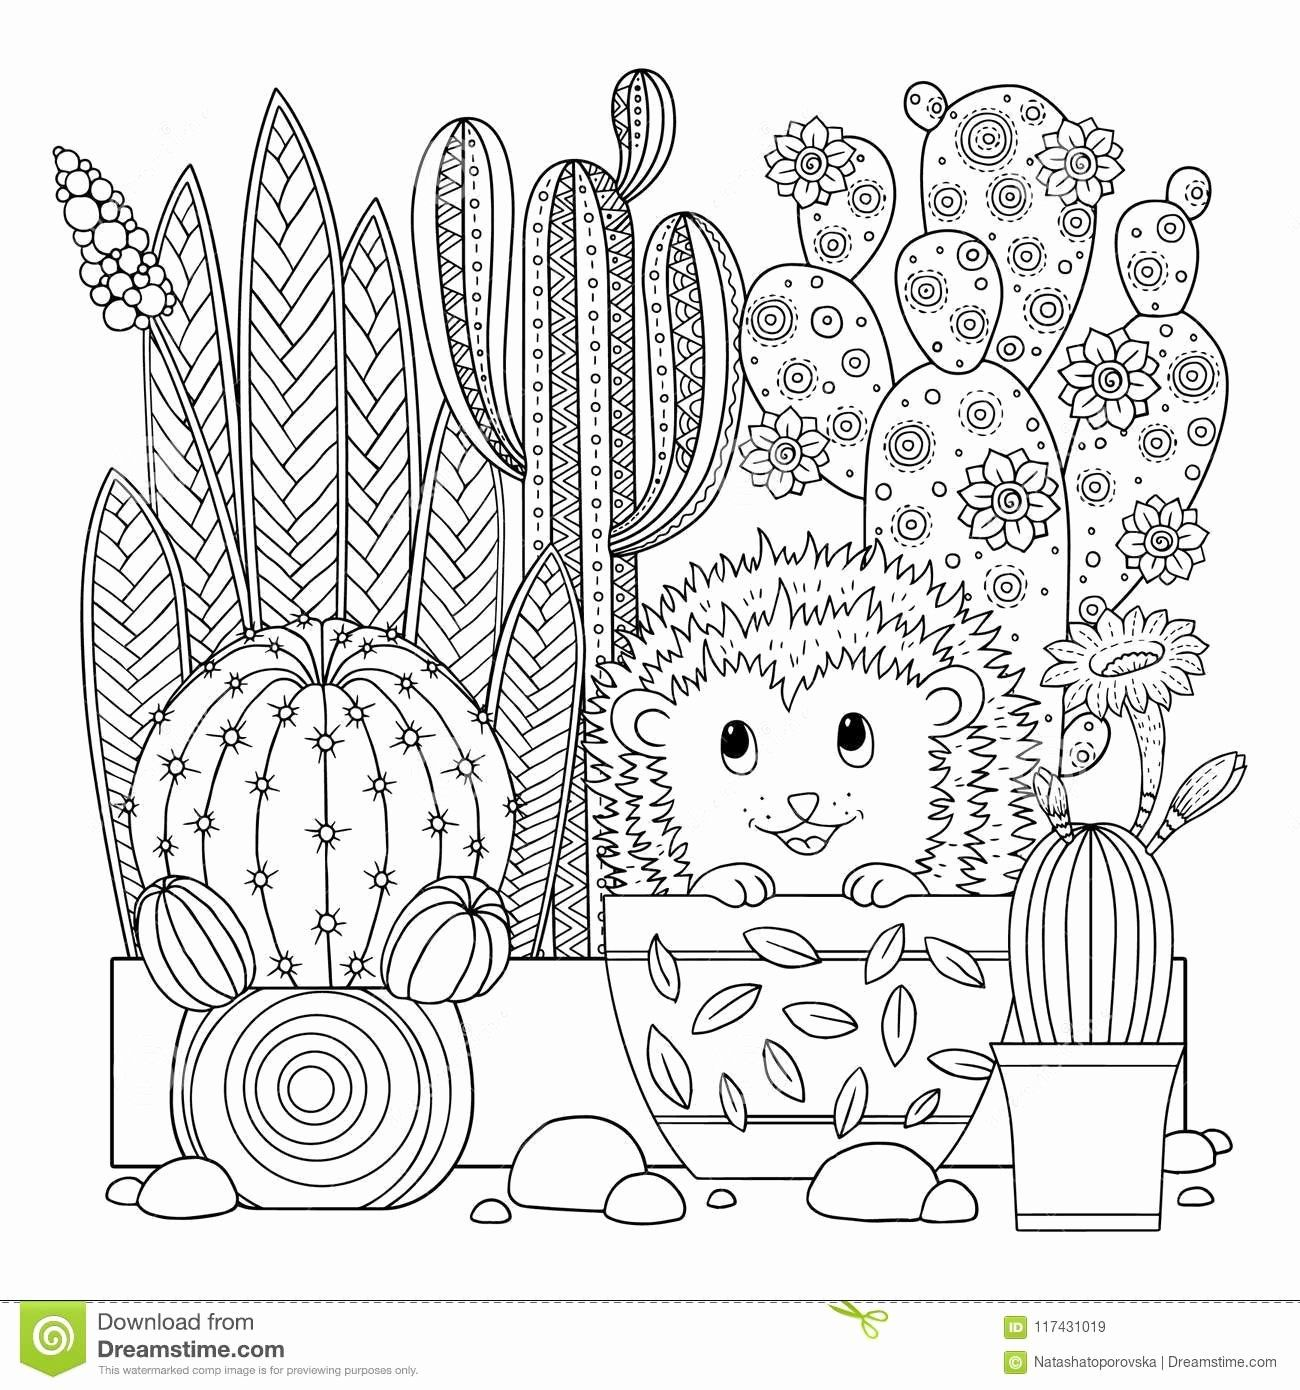 28 Cute Cactus Coloring Page Coloring Pages Flag Coloring Pages